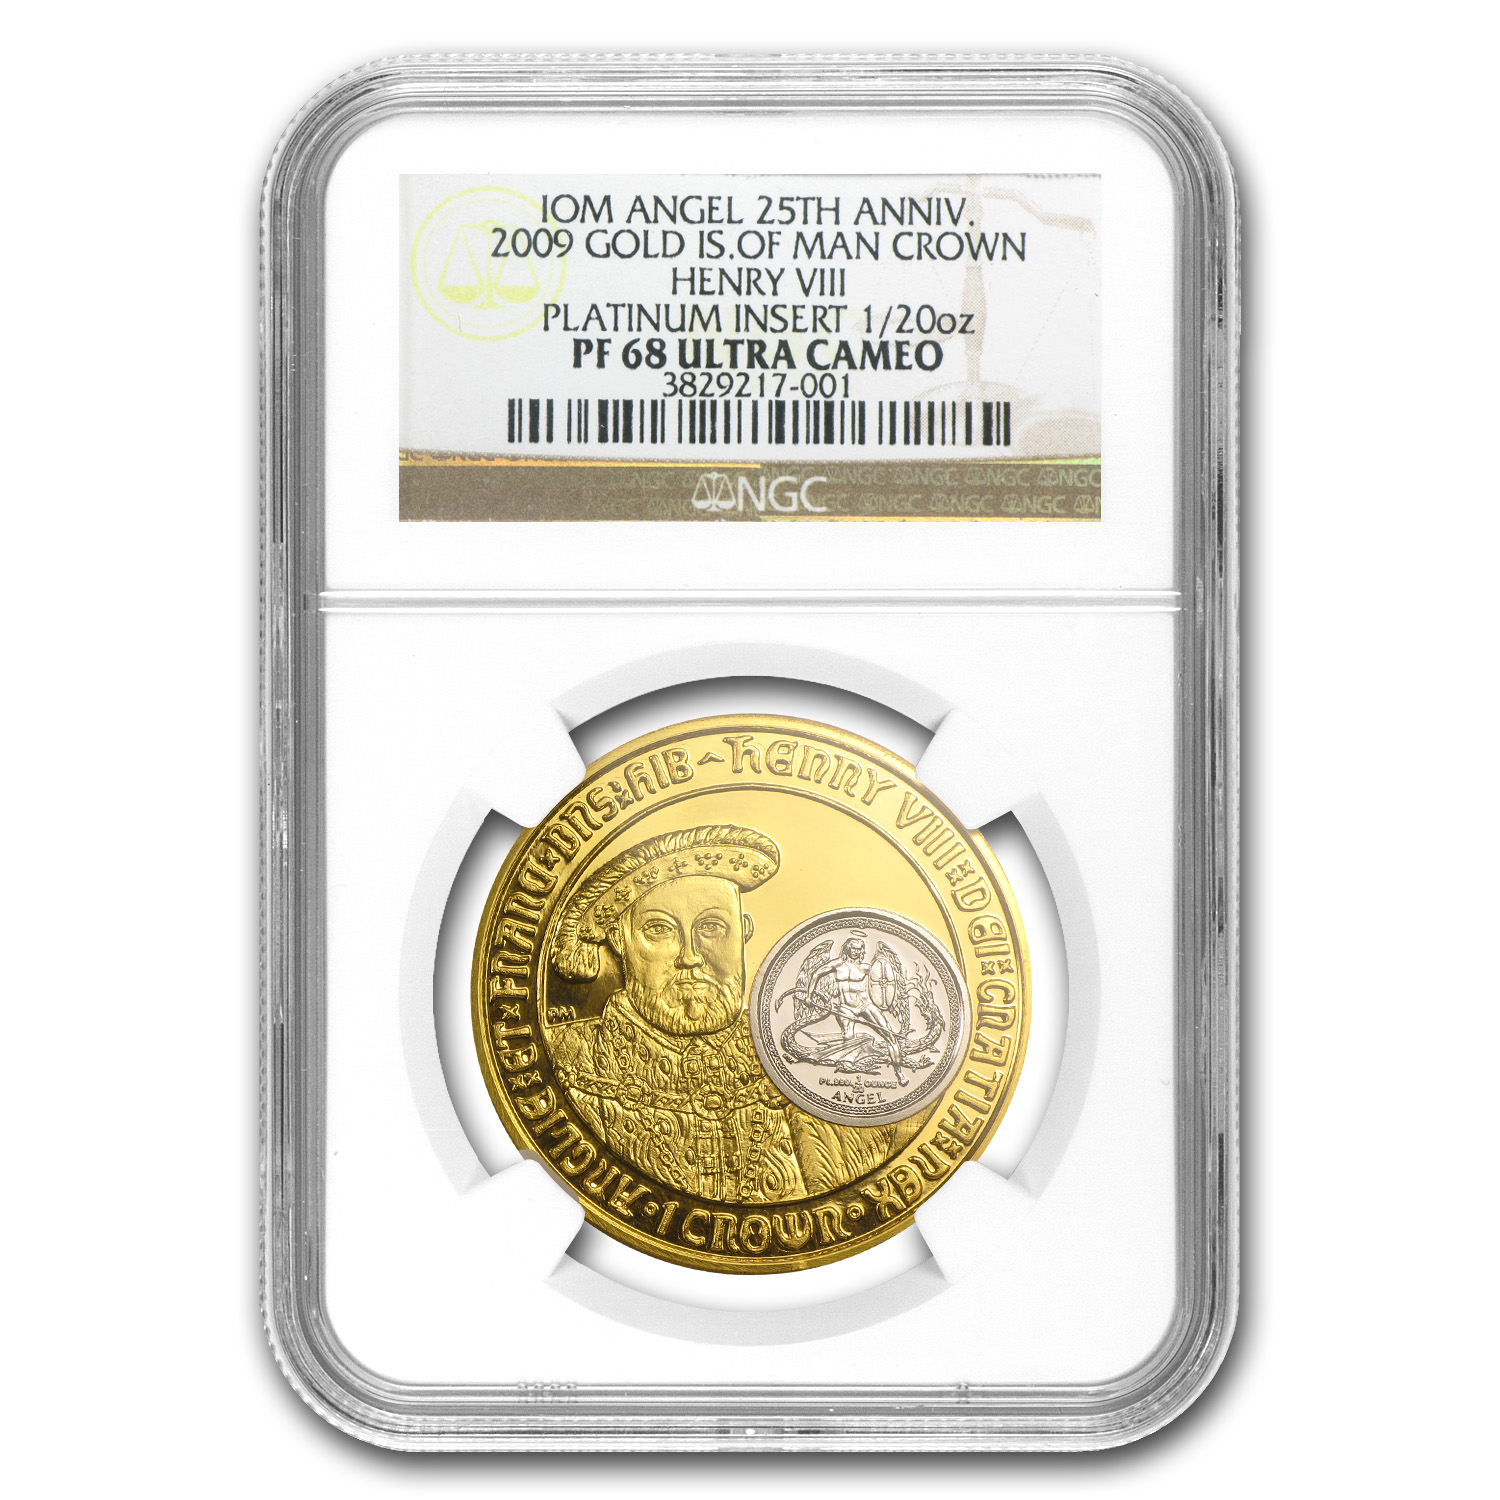 2009 Isle of Man 1 oz Gold 1/20 oz Platinum Henry VIII PF-68 NGC